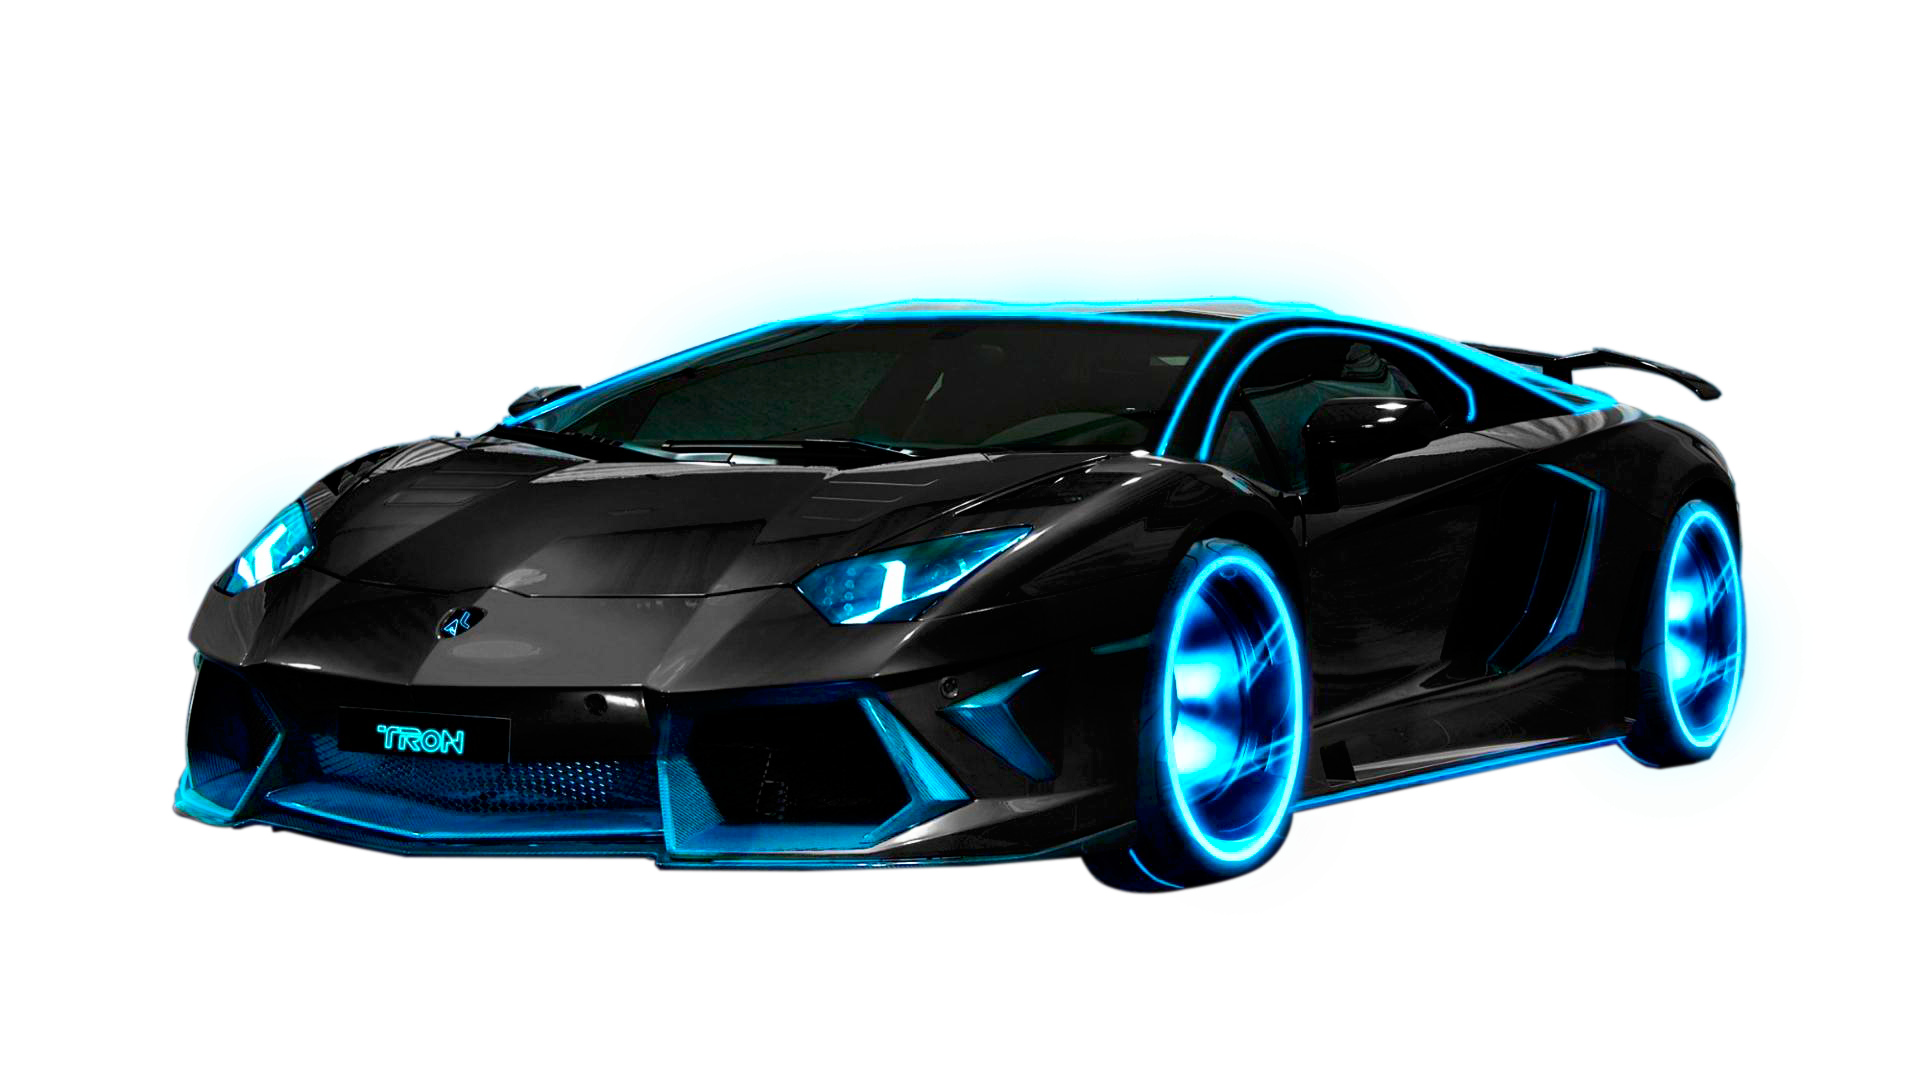 Cars transparent fast. Render car tron by